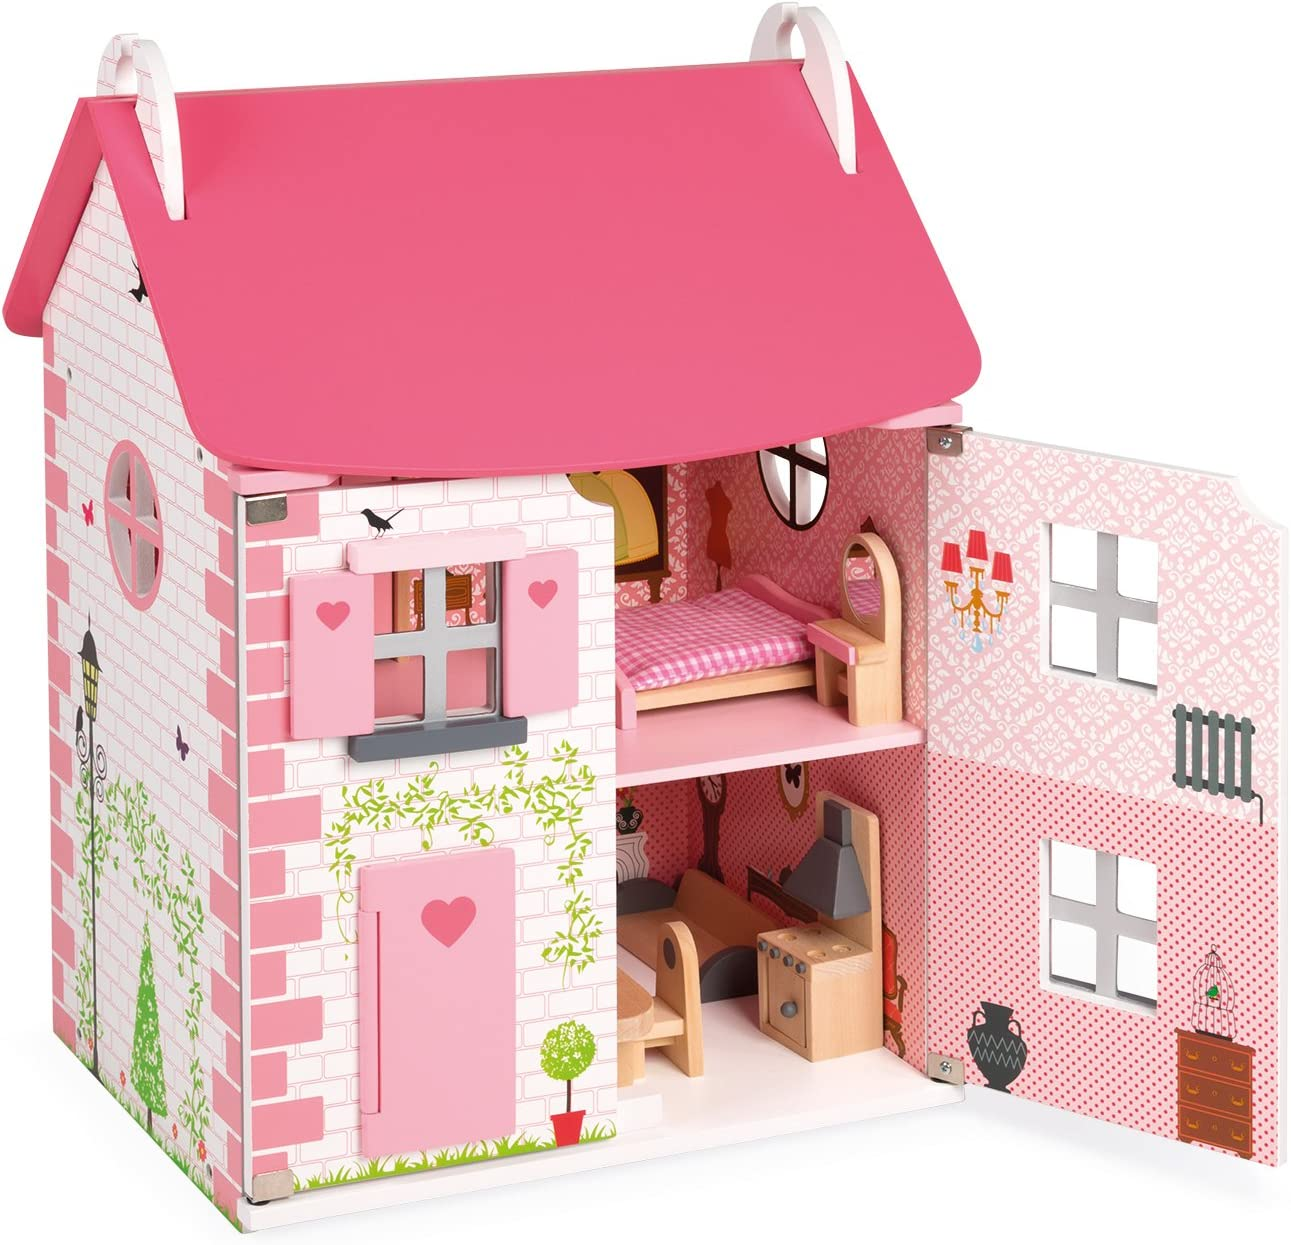 Janod Mademoiselle Doll's House – 3-Level Classic Wooden Dollhouse with Furniture – Store Everything Inside and Transport Everywhere You Go – Develops Role Play and Imaginative Skills – Ages 3+ Years